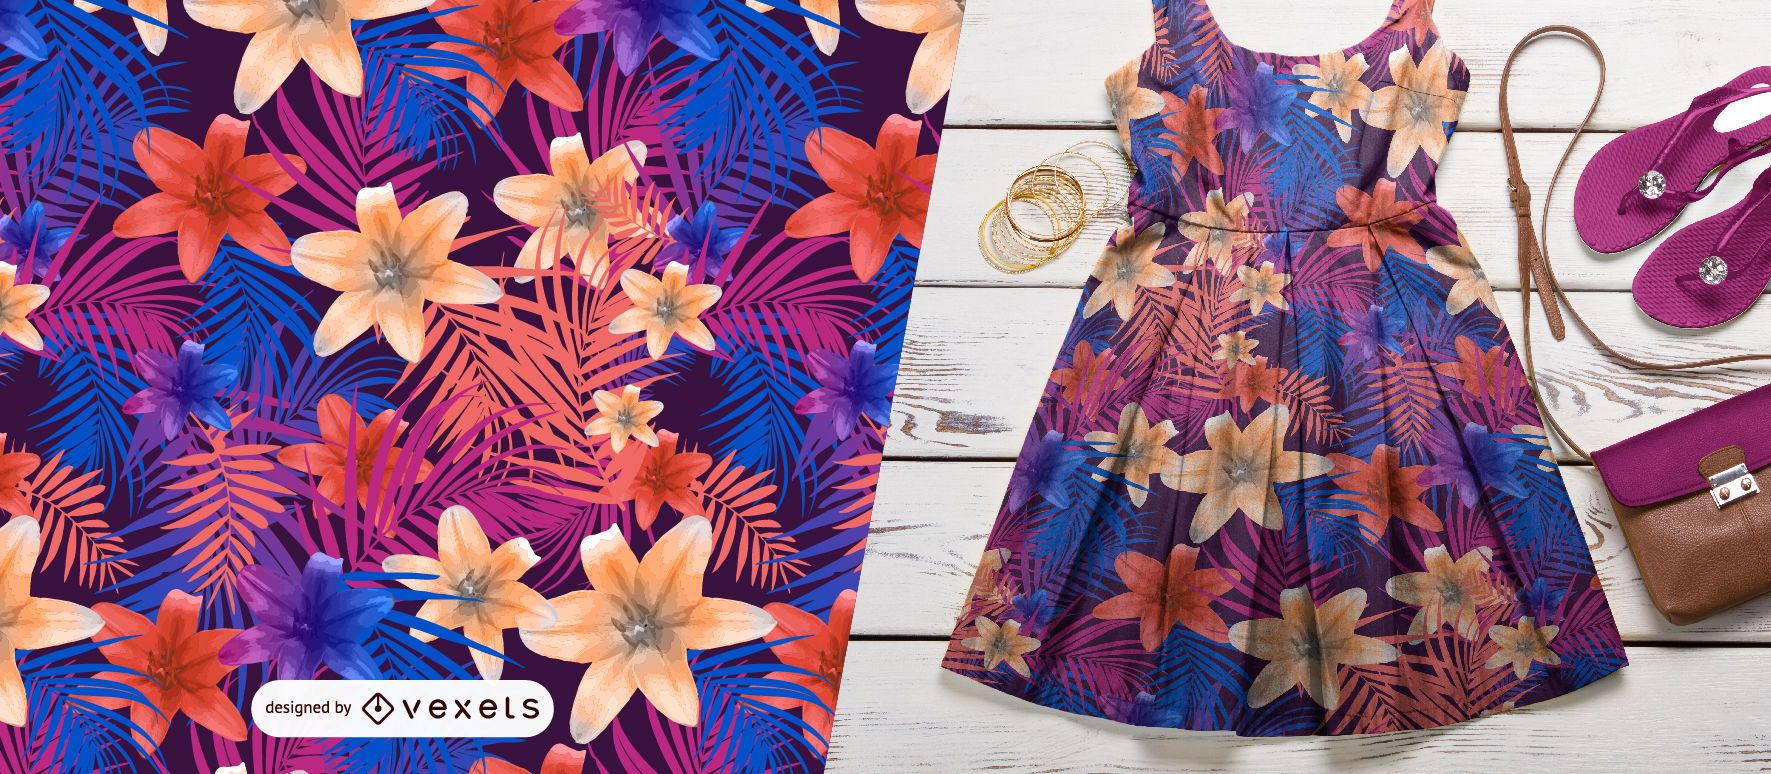 Lilies and palm leaves pattern